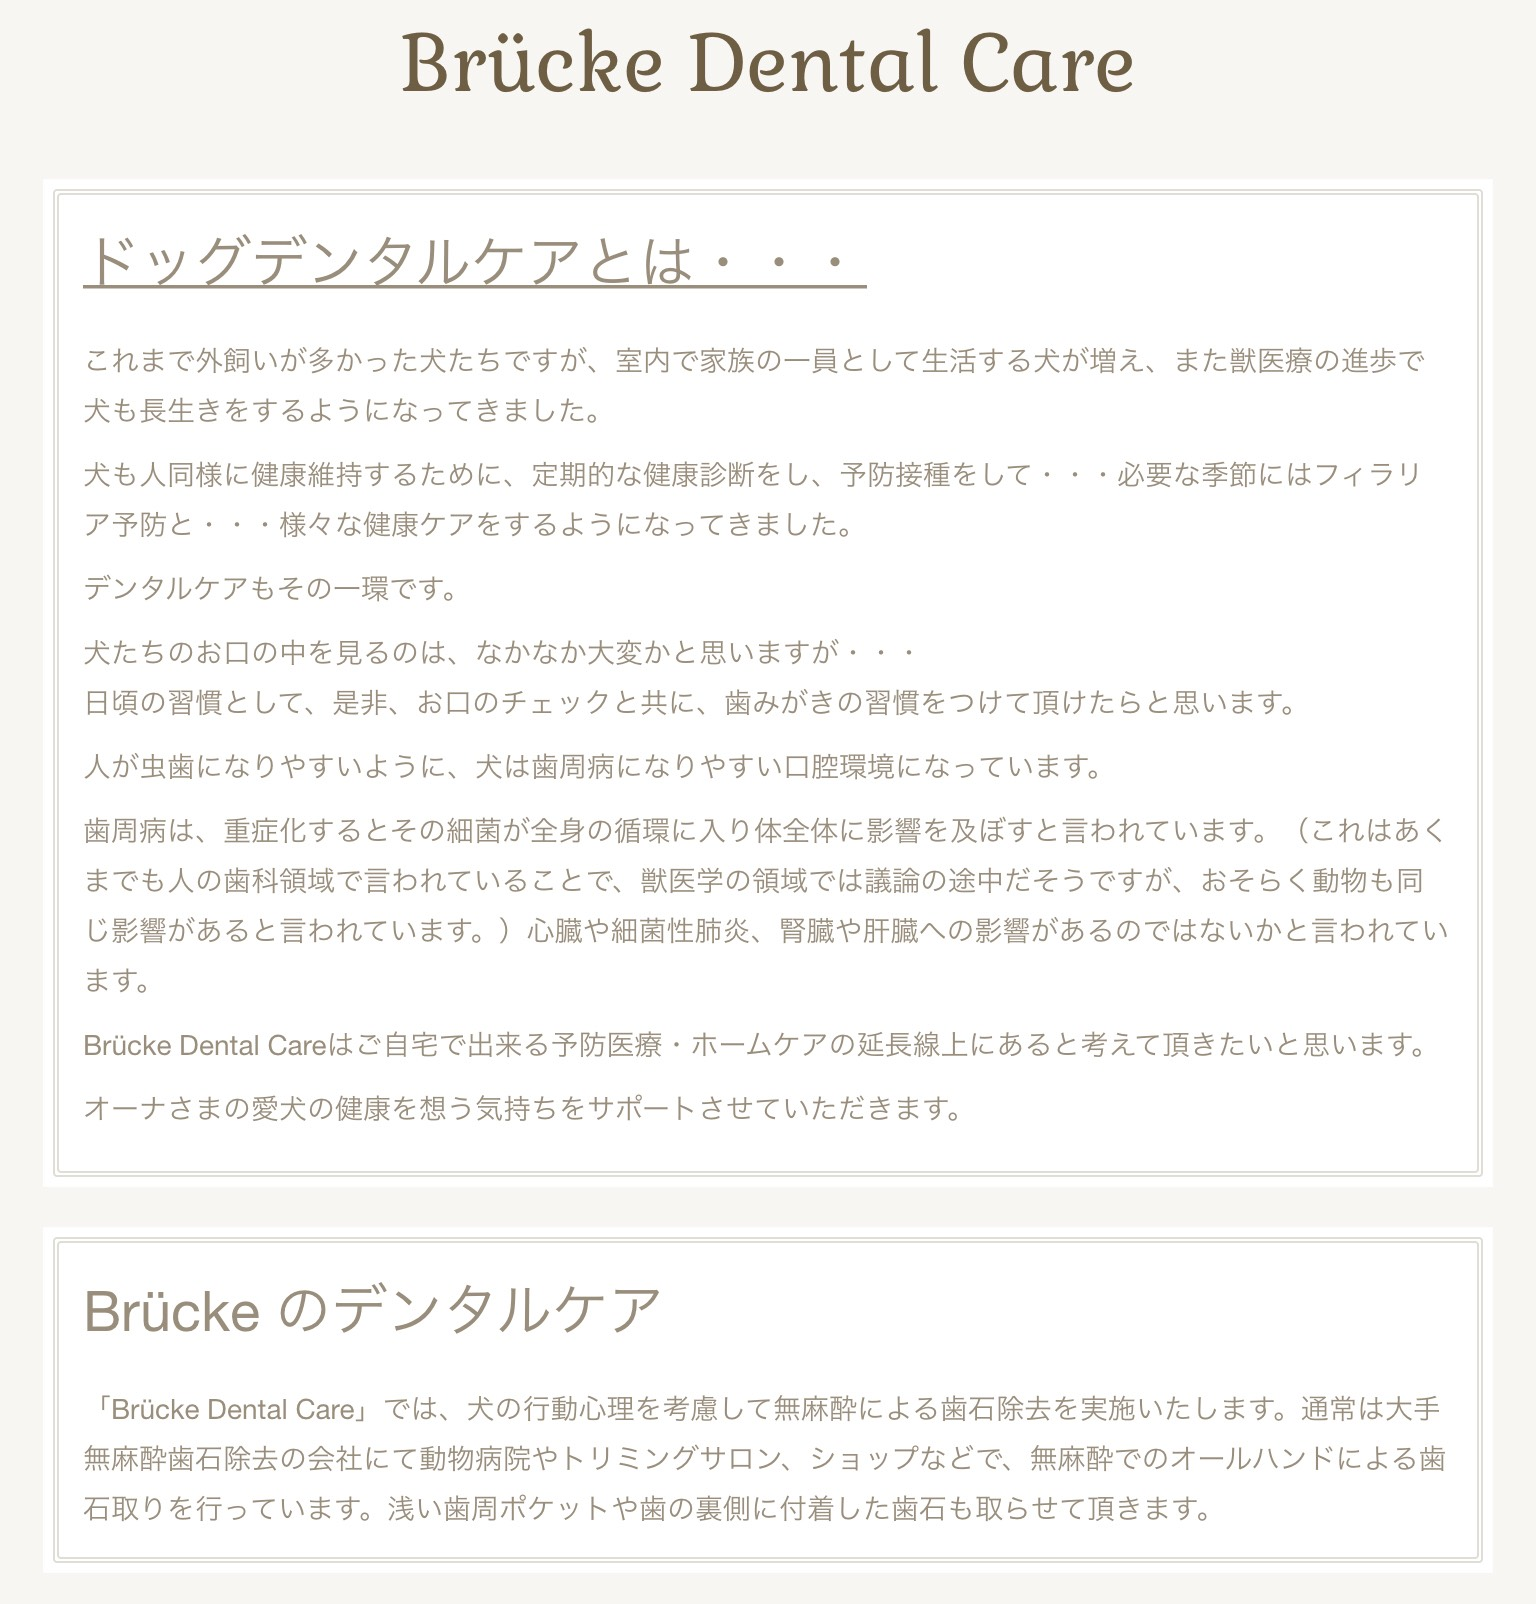 Brucke Dental Care